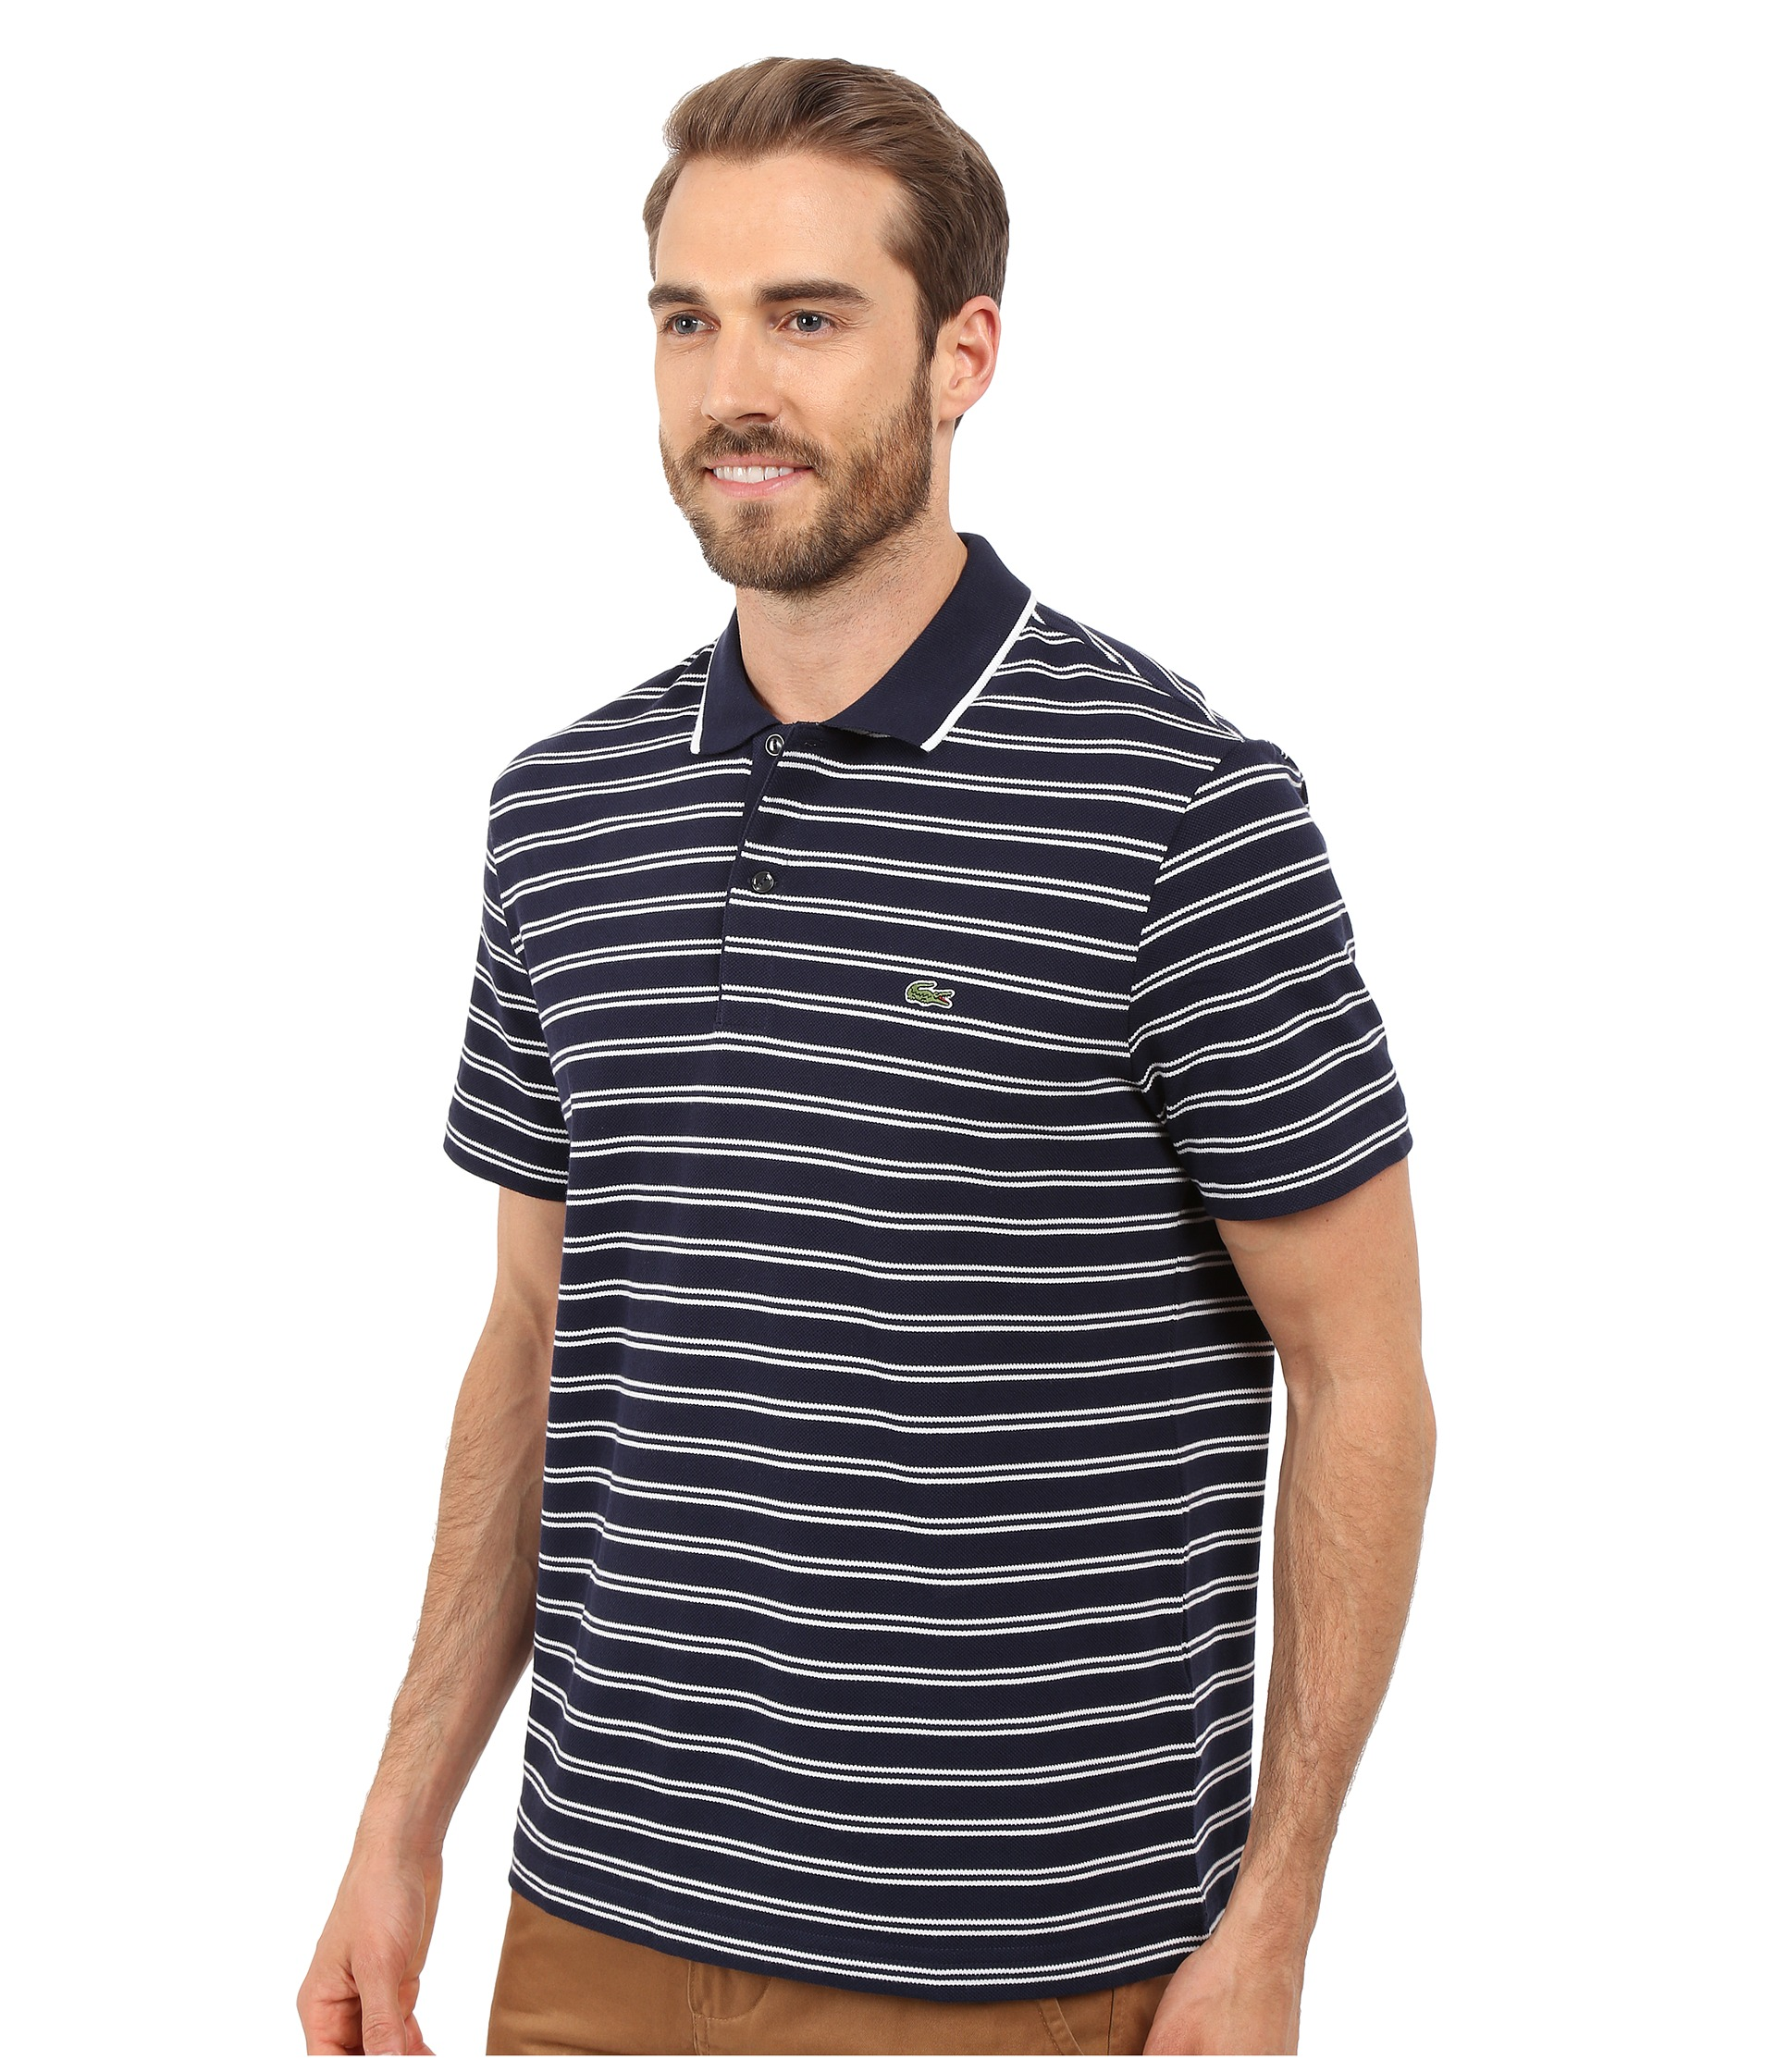 Lacoste short sleeve pique jersey stripe polo navy blue for Lacoste stripe pique polo shirt